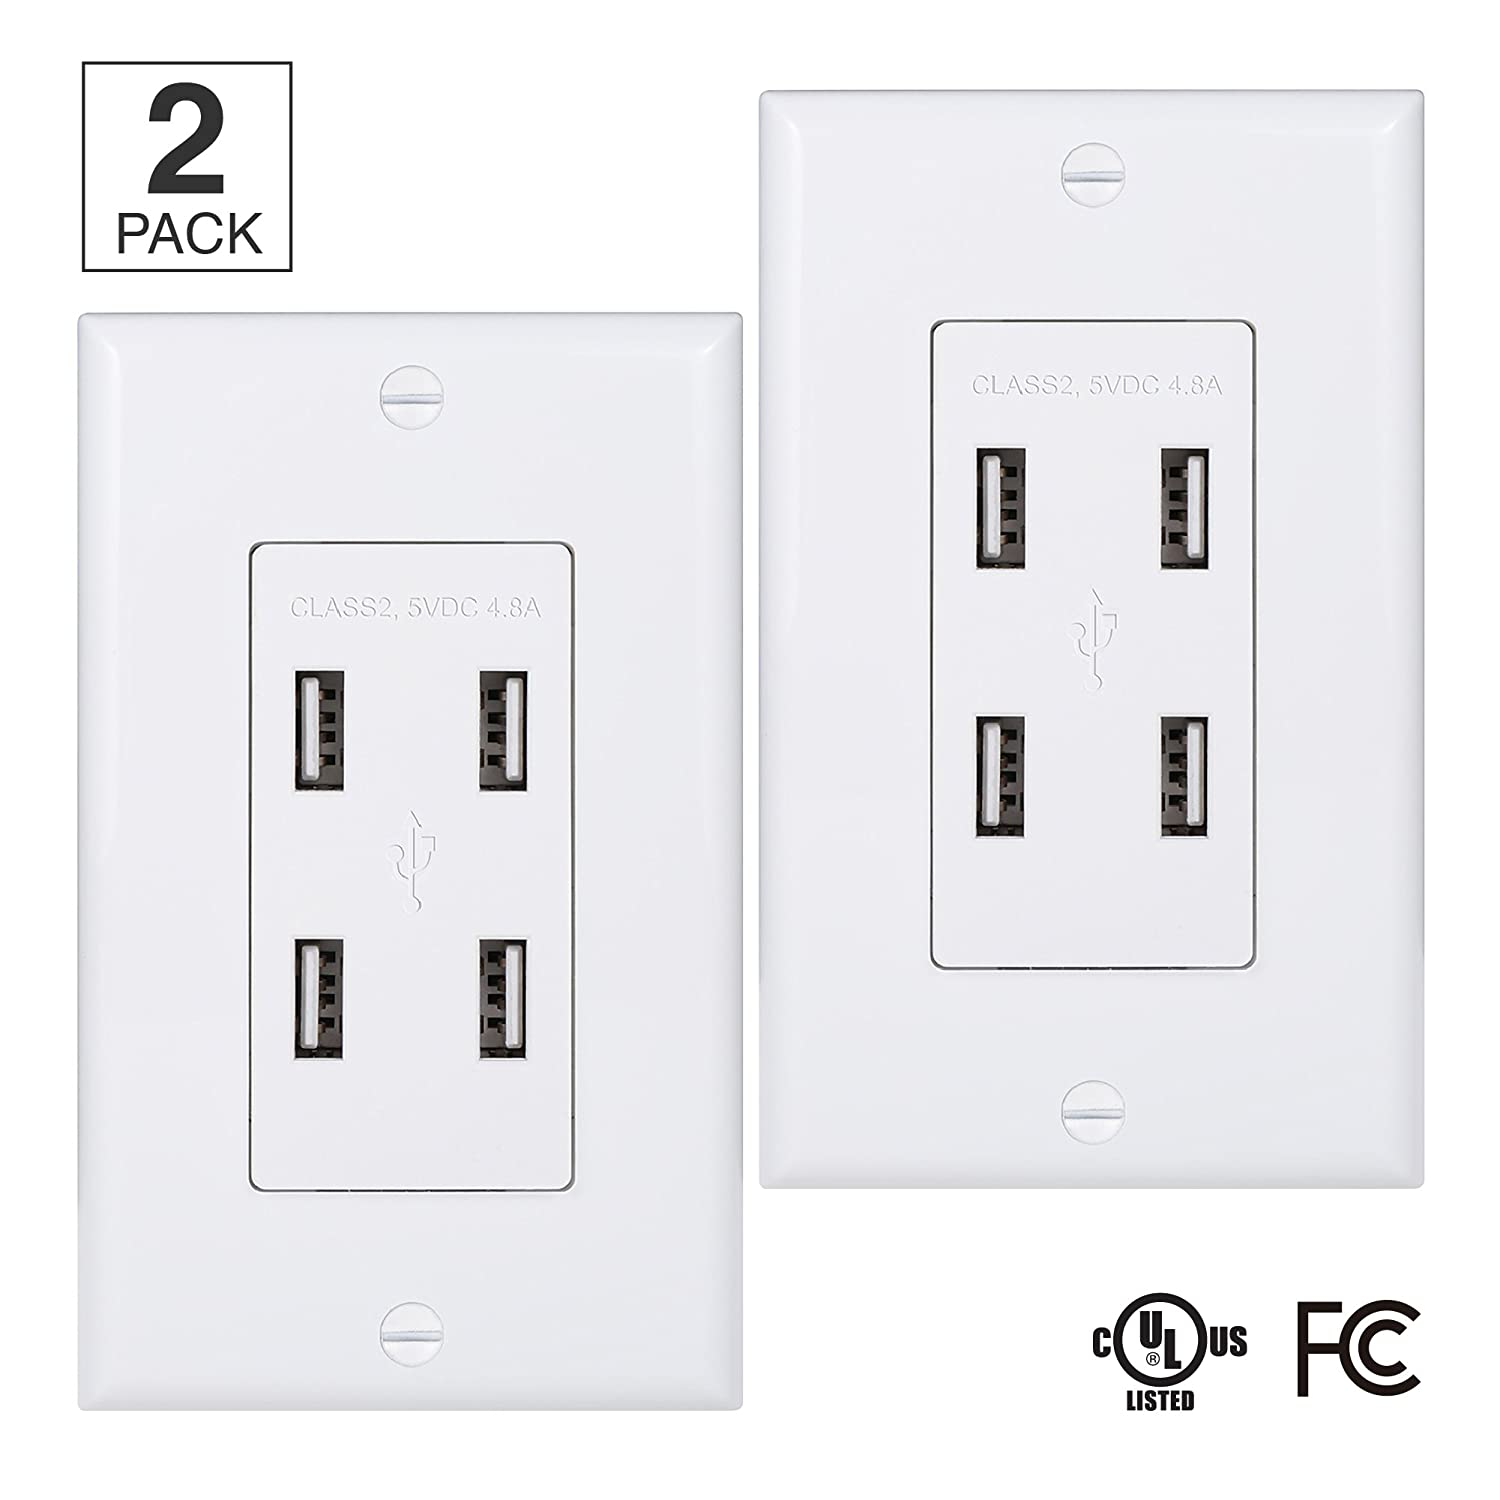 (Pack of 2) 4-Port USB Power Outlet - UL Listed High Speed Dual USB Electrical Wall Outlet - Four 3.1A USB Ports - Wall Plate Included - Fast Charging